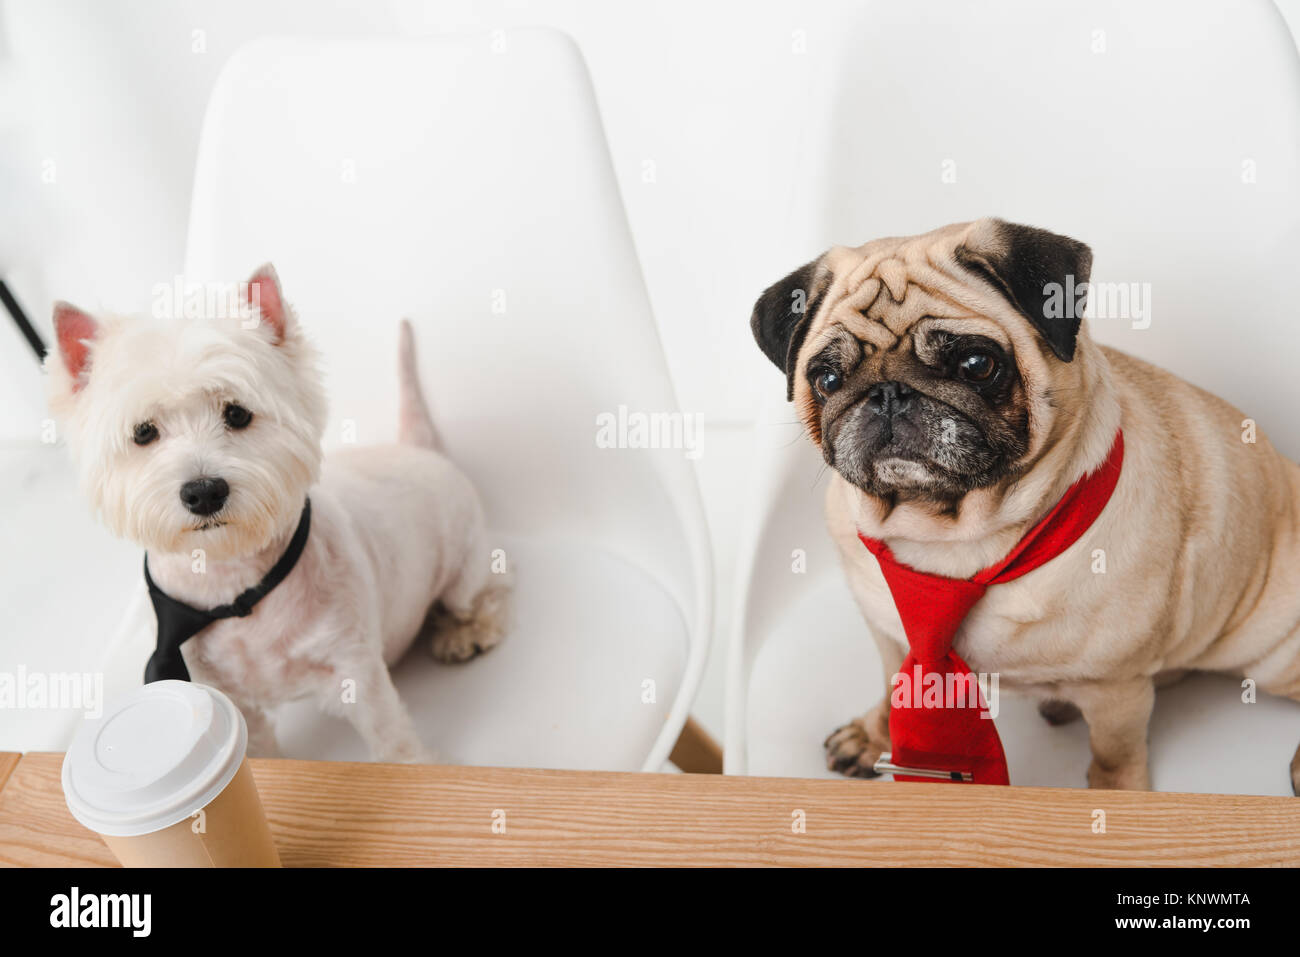 Business Dogs In Neckties   Stock Image